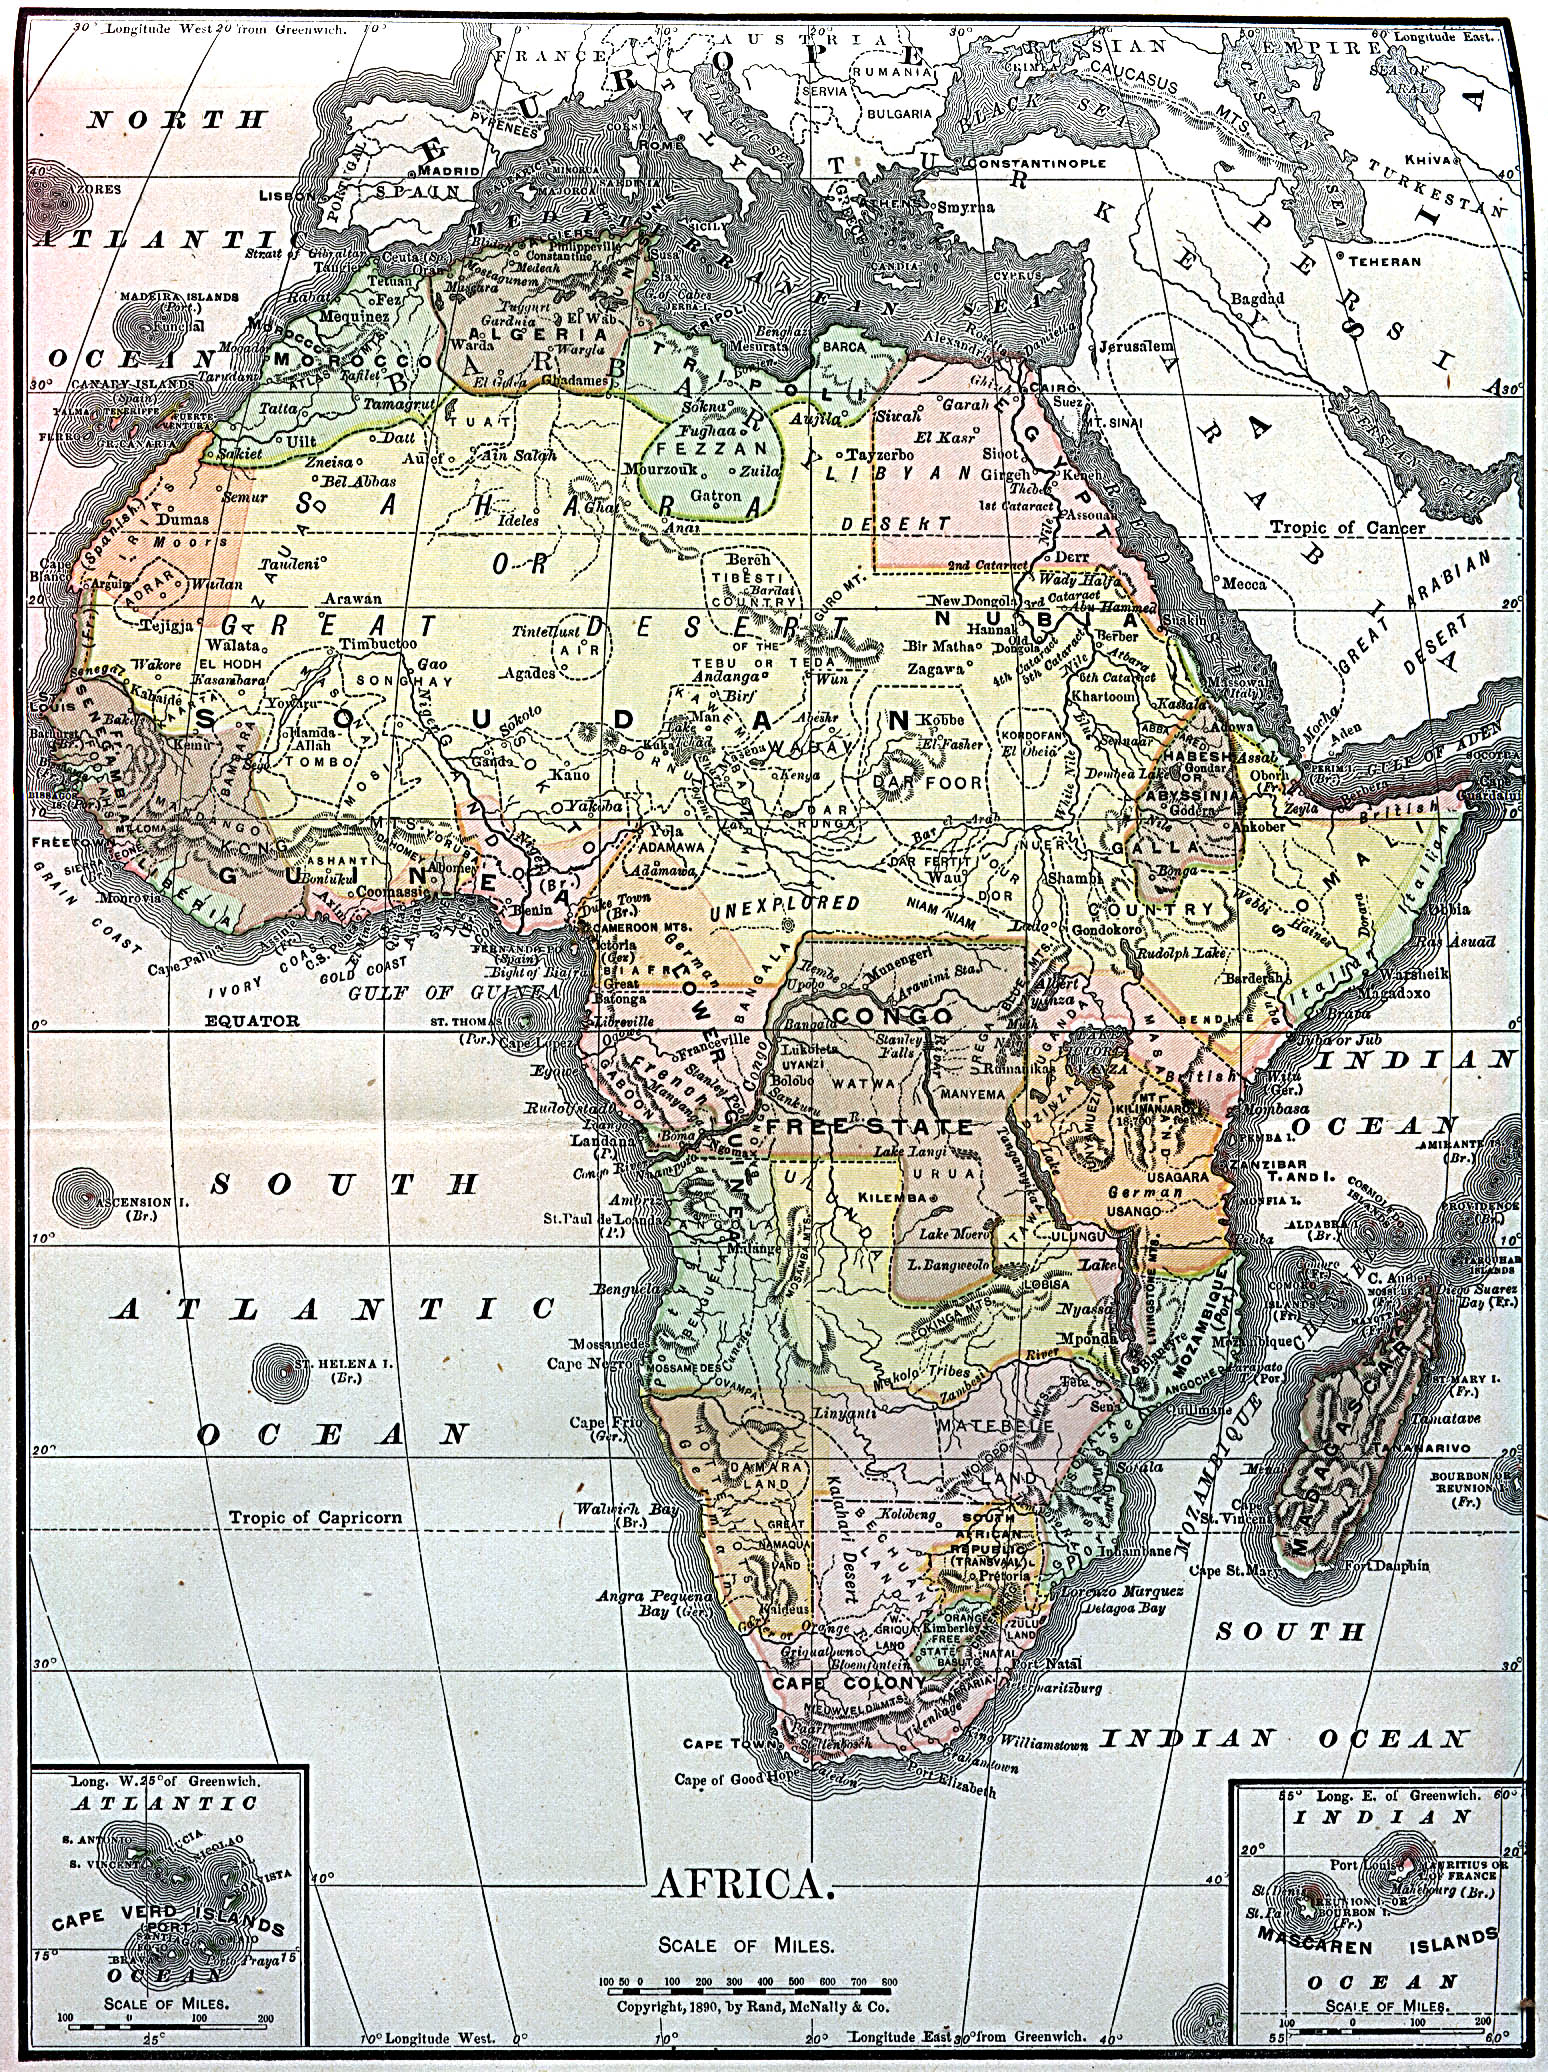 Map Of Africa 1890 File:Africa 1890.   Wikipedia